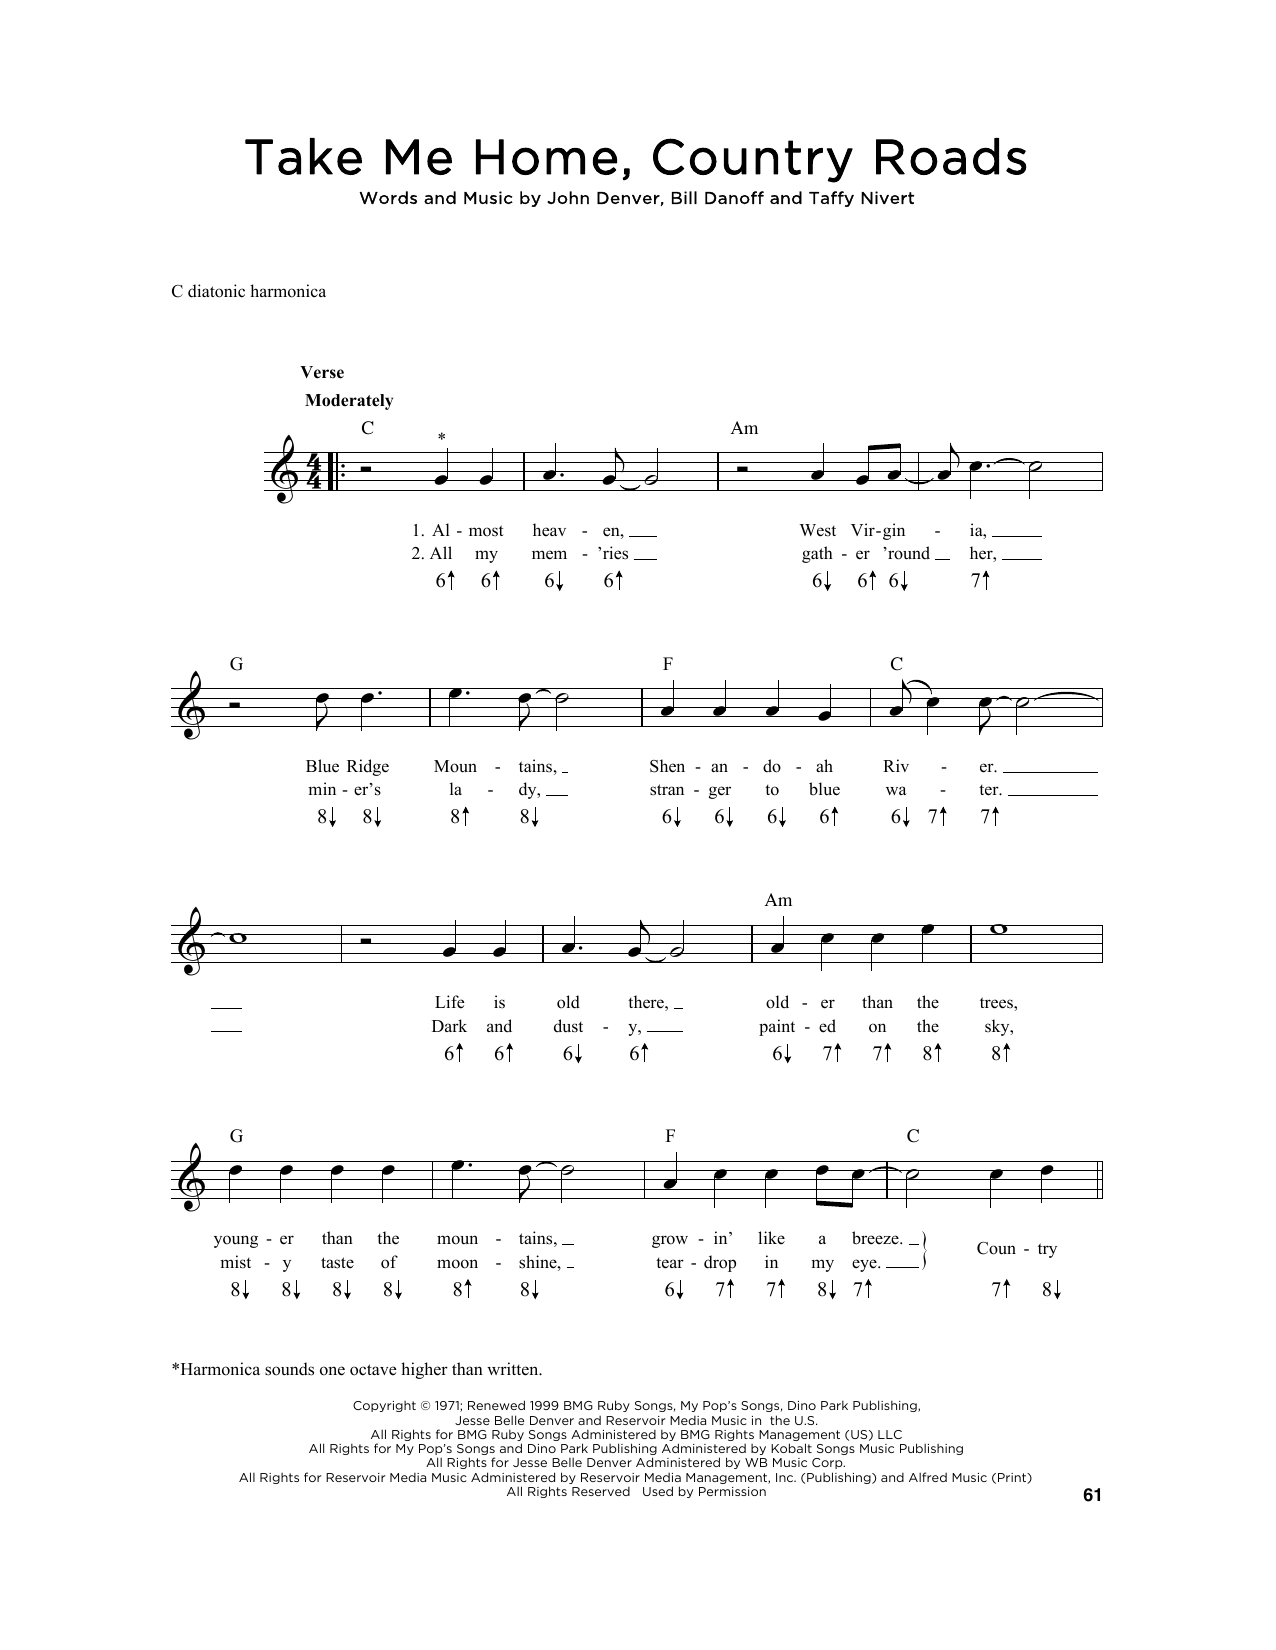 Take Me Home Country Roads sheet music by John Denver Harmonica